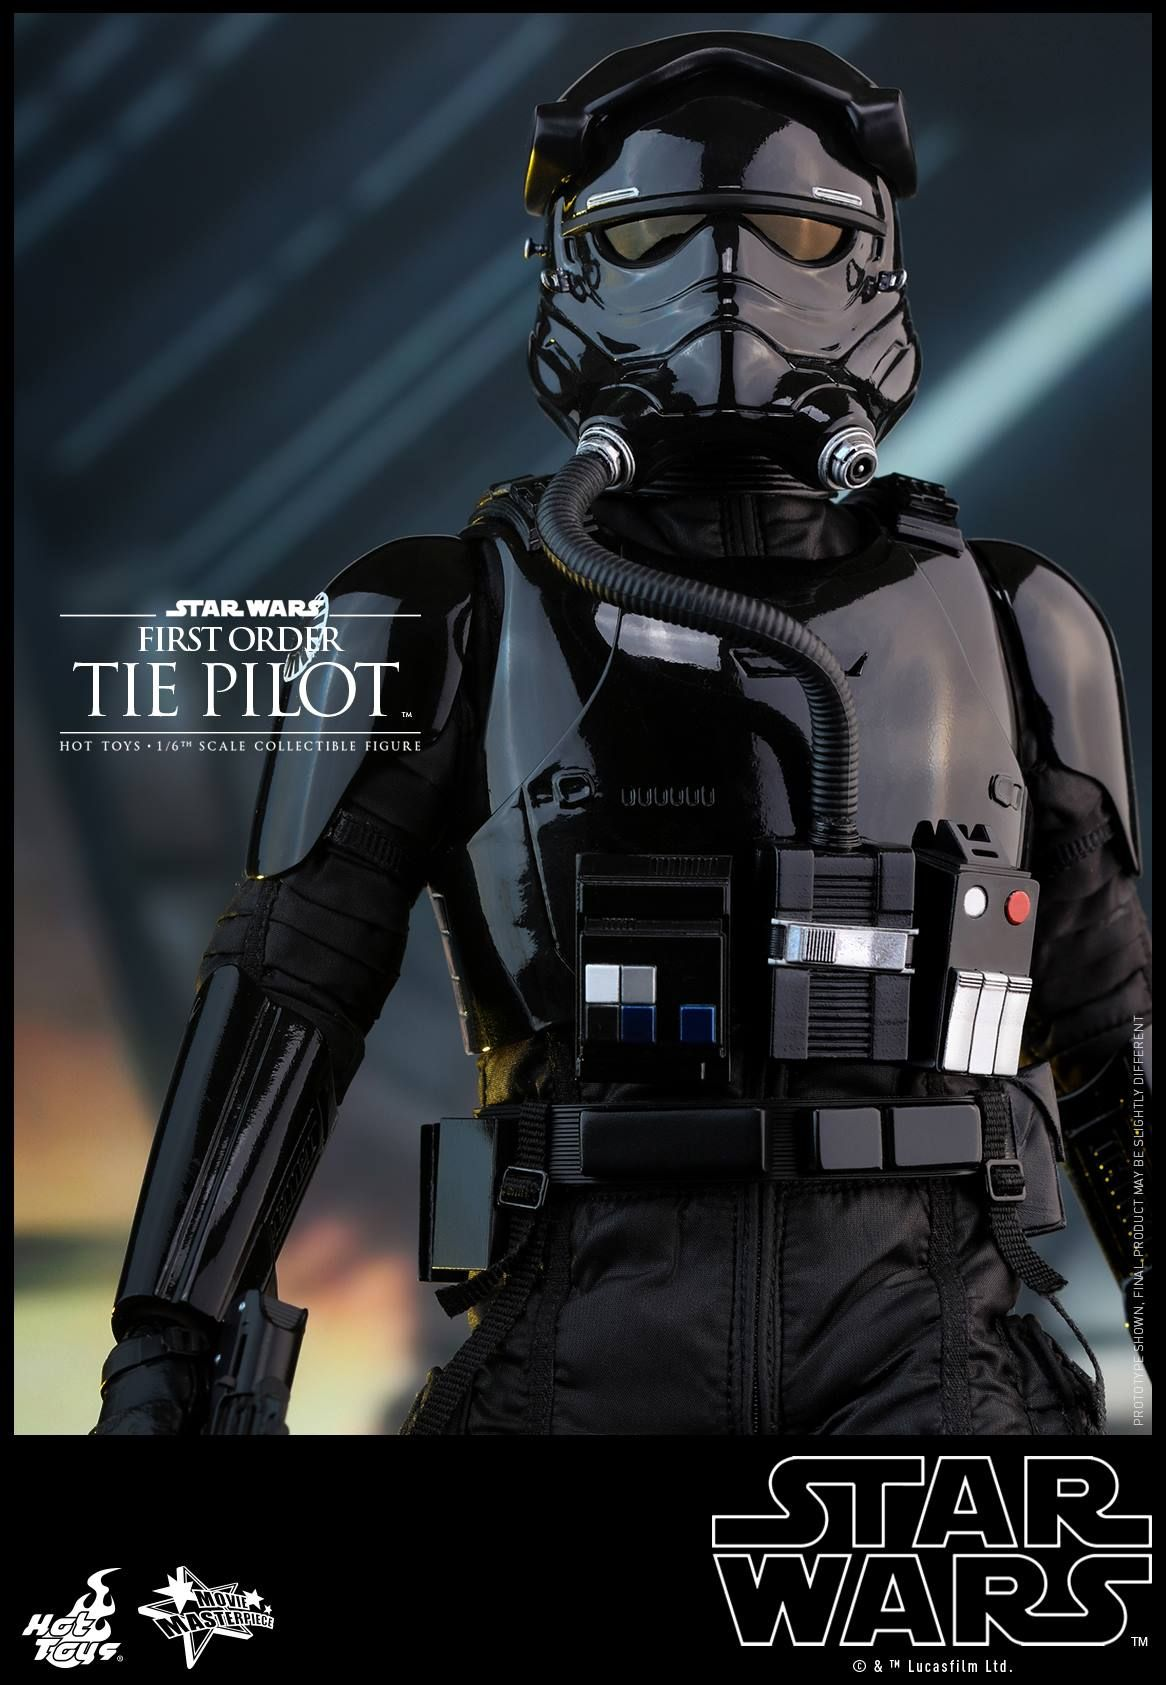 First Order Tie Pilot Hot Toy From Star Wars The Force Awakens Star Wars Trooper Star Wars Star Wars Art